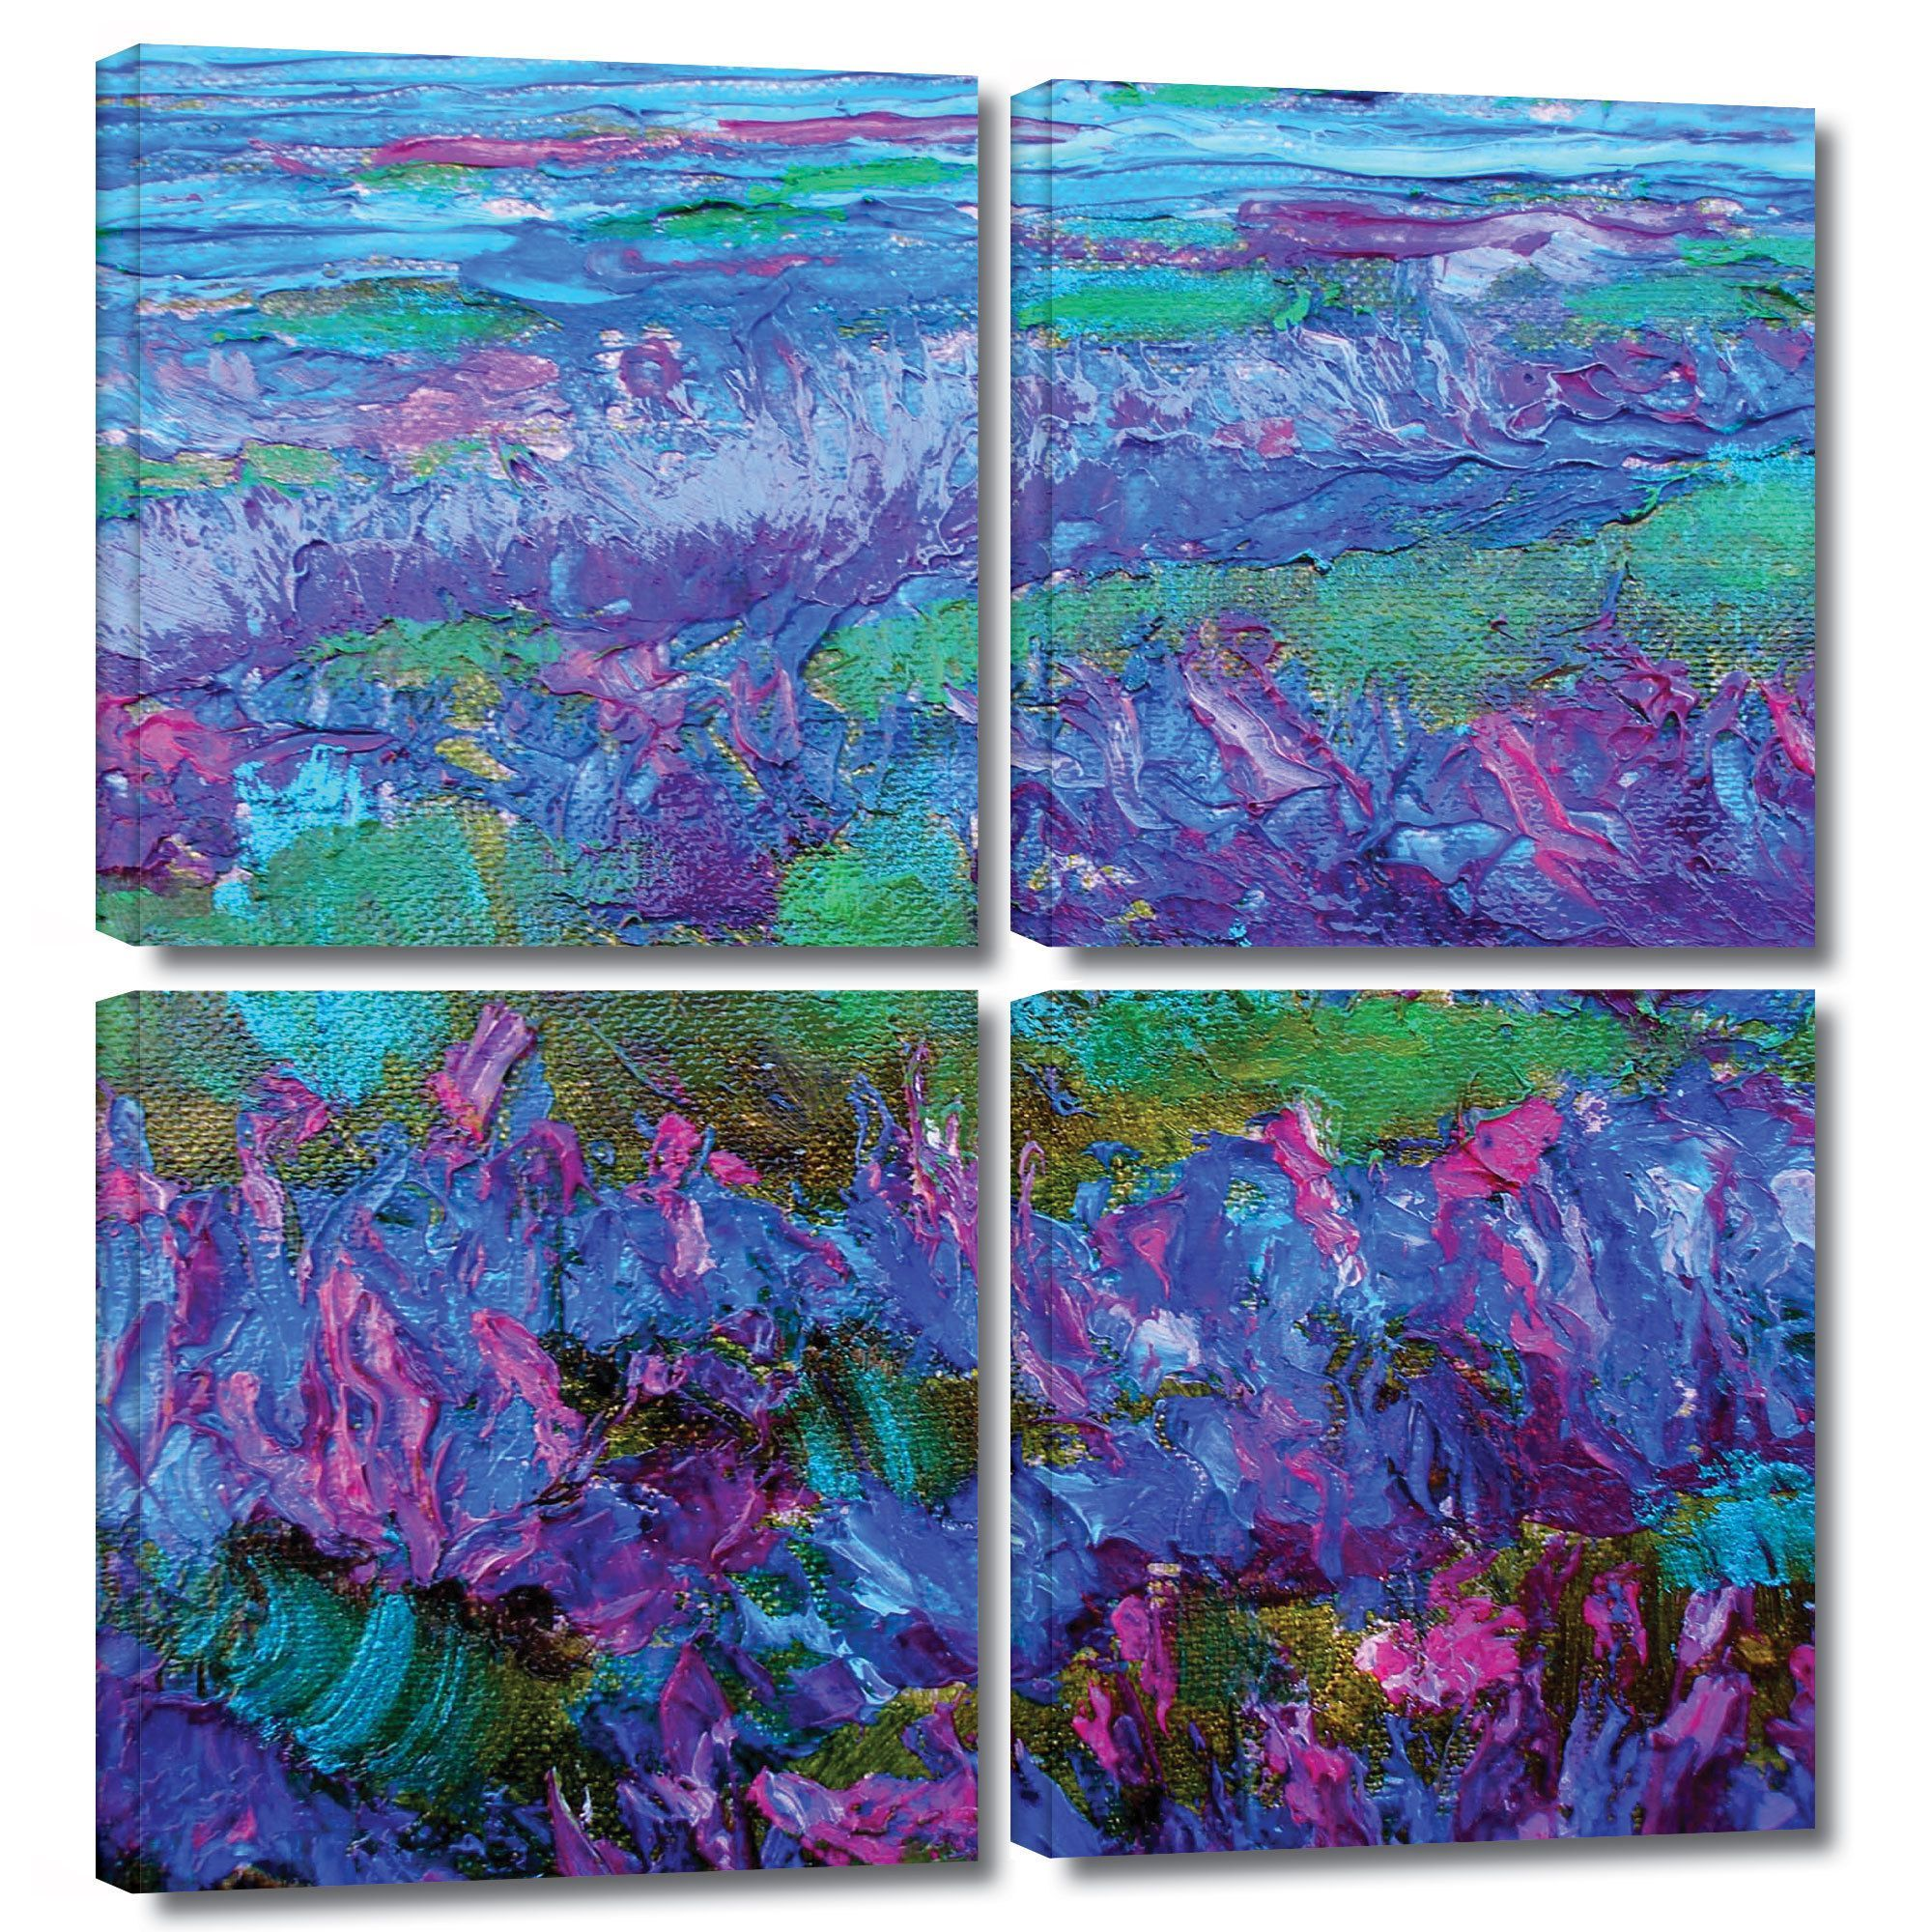 ArtWall Susi Franco's StaticeFlying, 4 Piece Gallery Wrapped Square Set